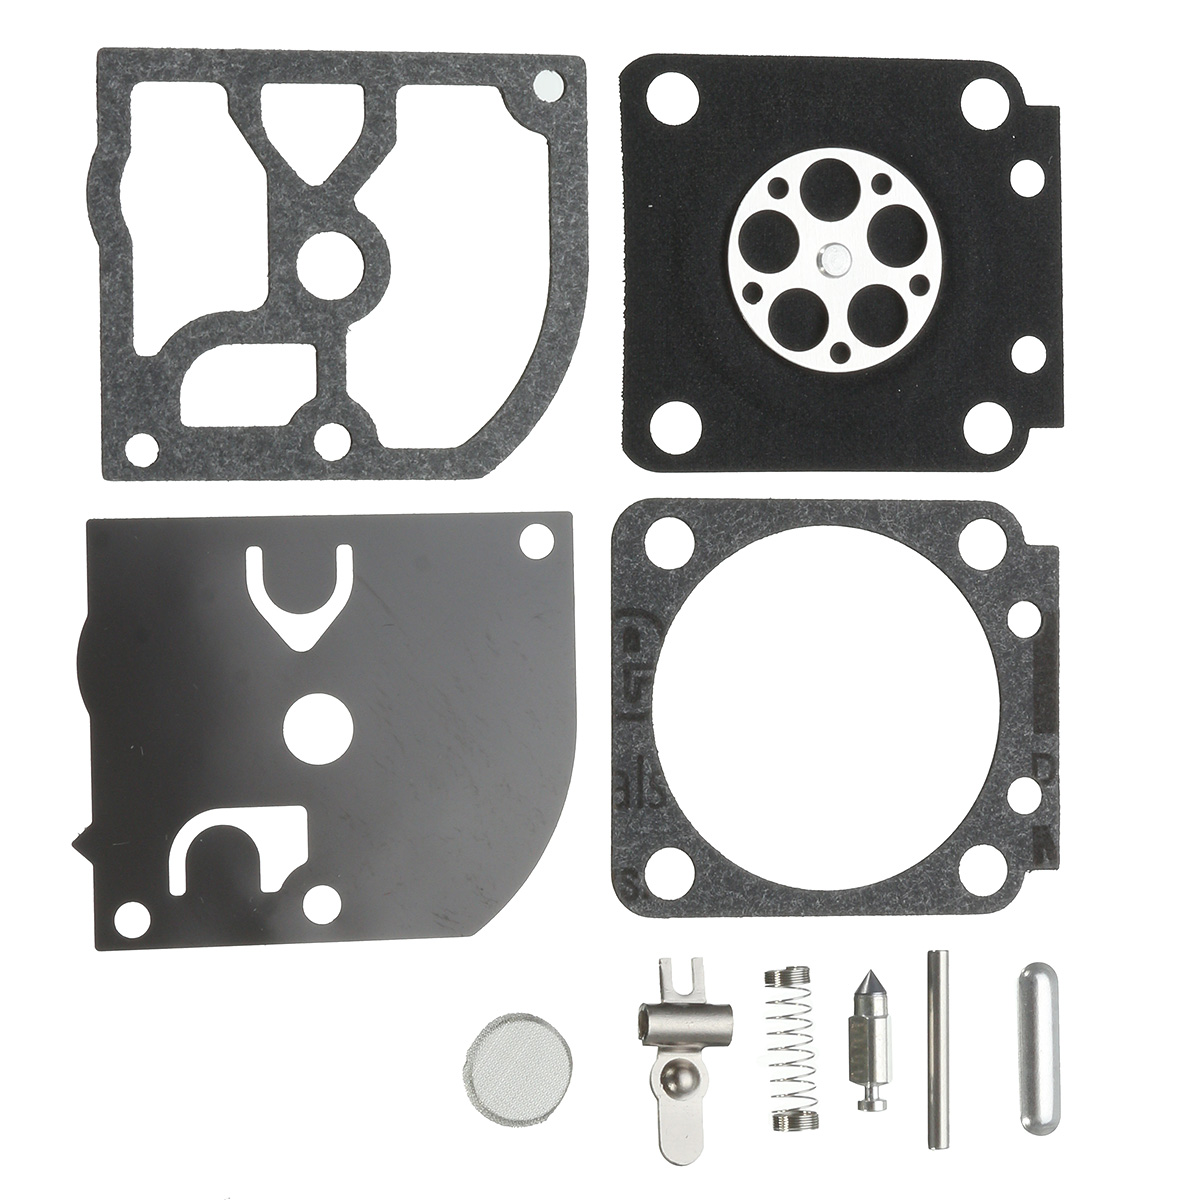 Buy Carburetor Repair Rebuild Kit For ZAMA RB-129 C1M-W26 A-C Series Carbs